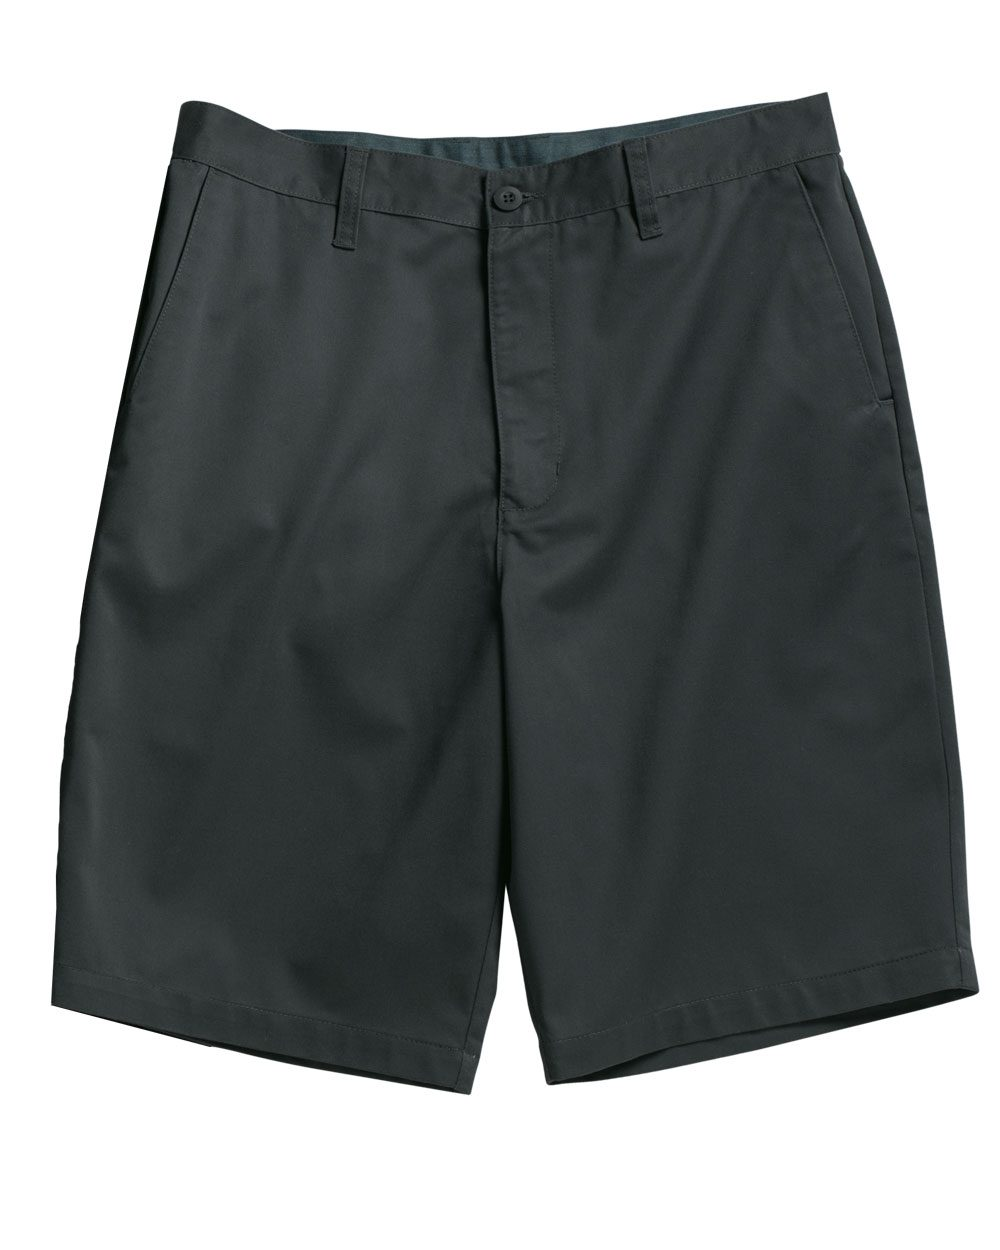 Burnside Chino Shorts - B9860